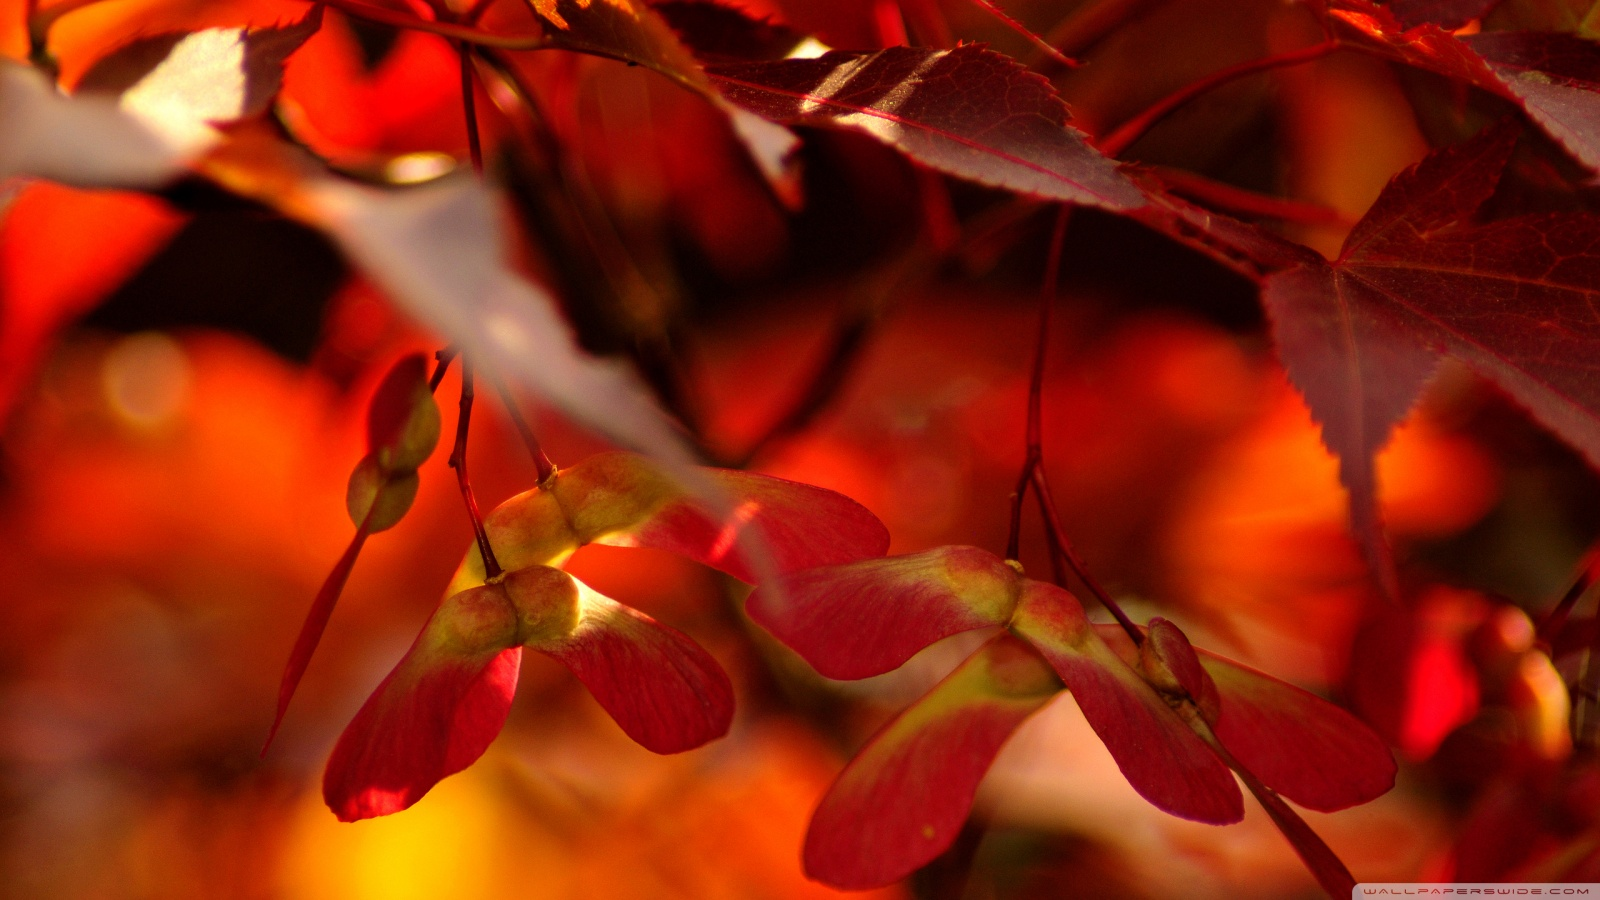 Fall Wallpaper Dual Monitor Red Autumn Leaves Close Up 4k Hd Desktop Wallpaper For 4k